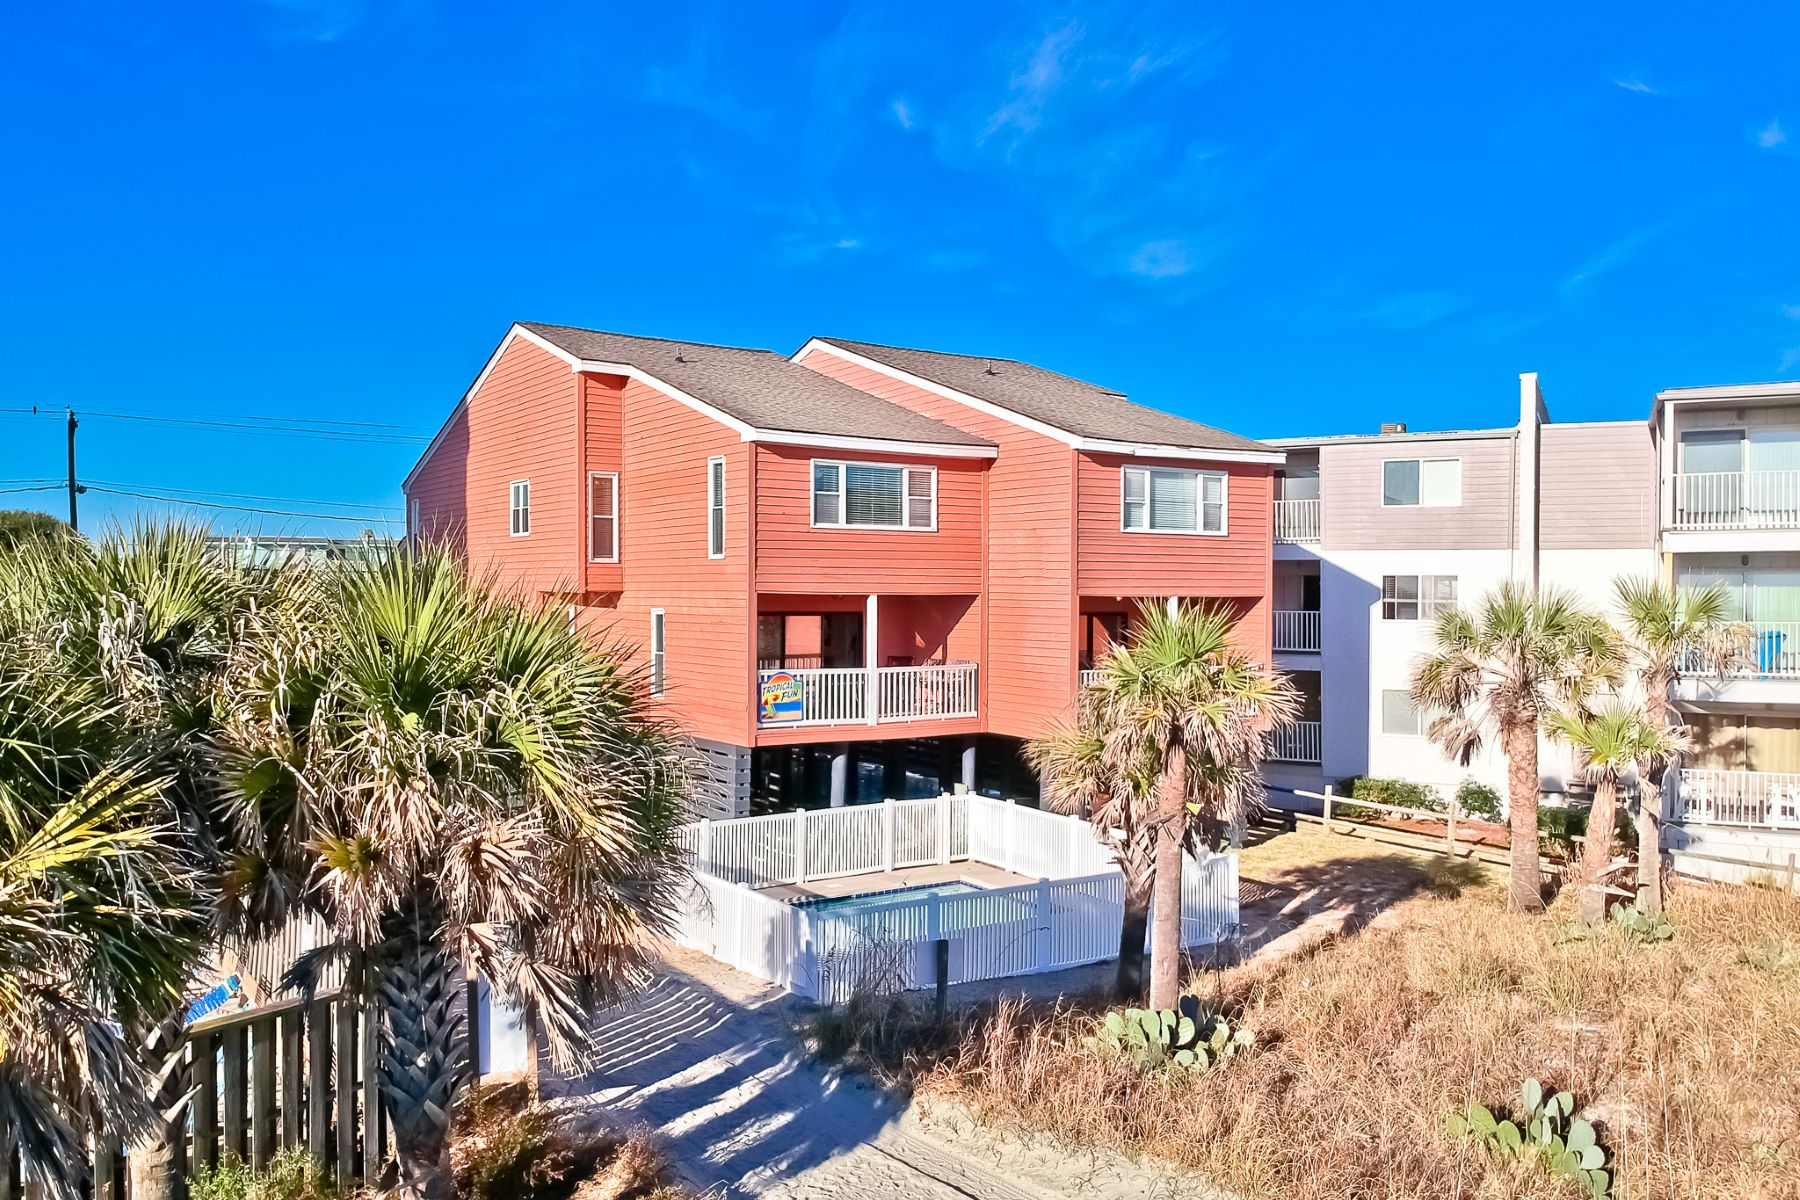 Duplex for Sale at Oceanfront Investment 6300 N. Ocean Blvd, North Myrtle Beach, South Carolina, 29582 United States